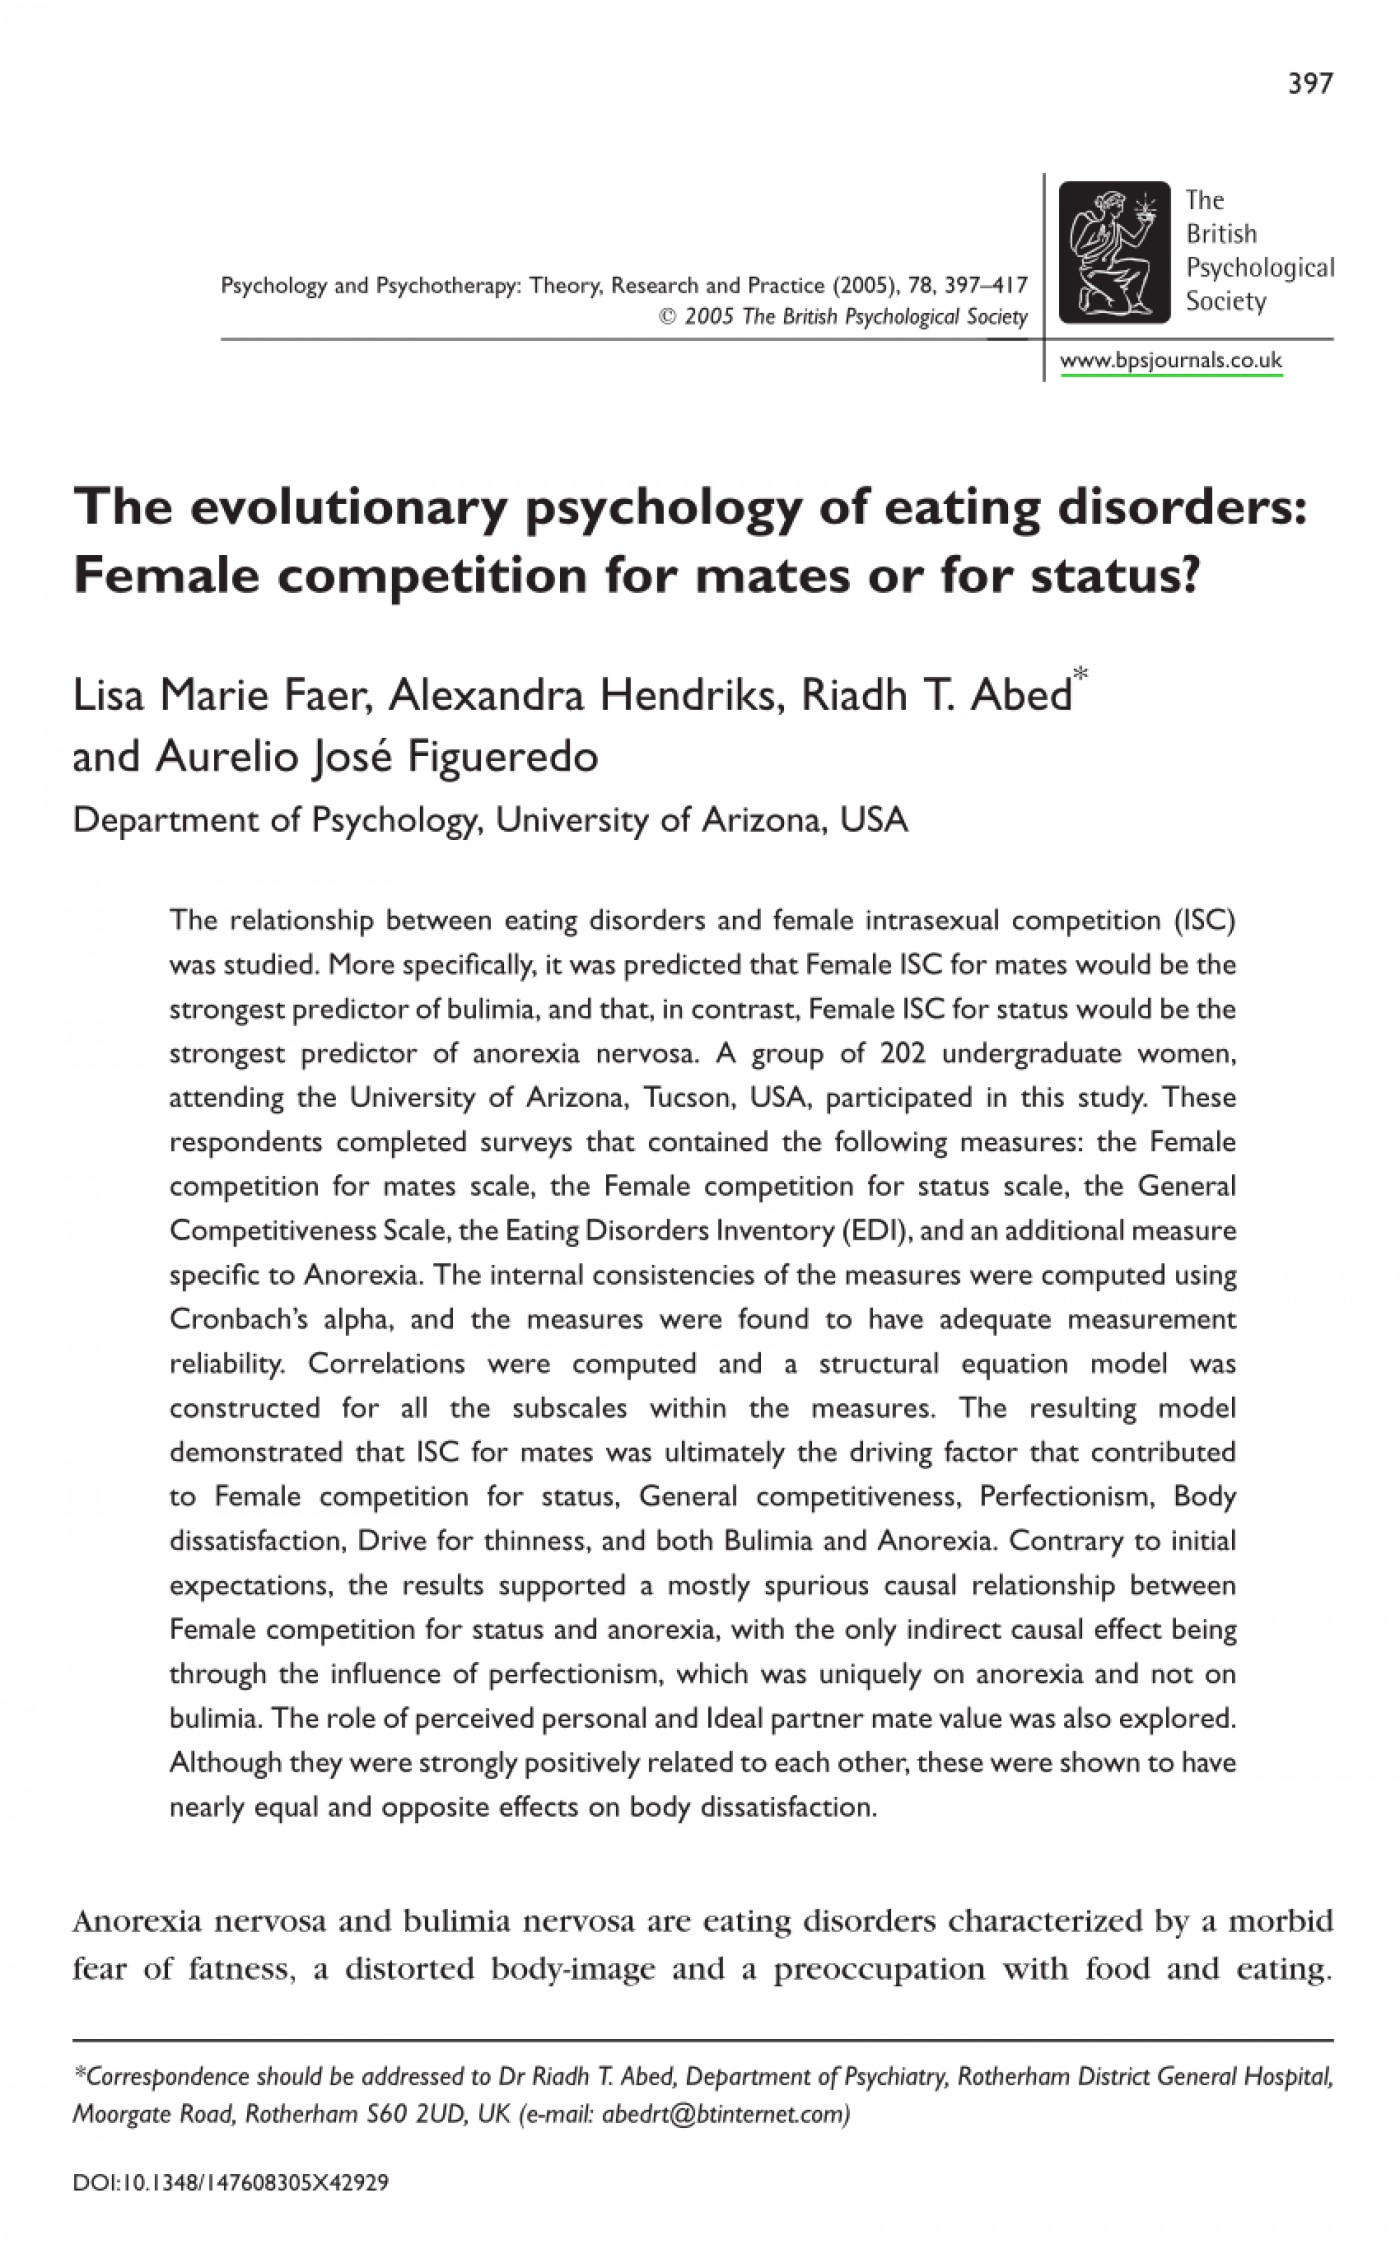 006 Psychology Research Paper On Eating Disorders Top Study Topics 1400